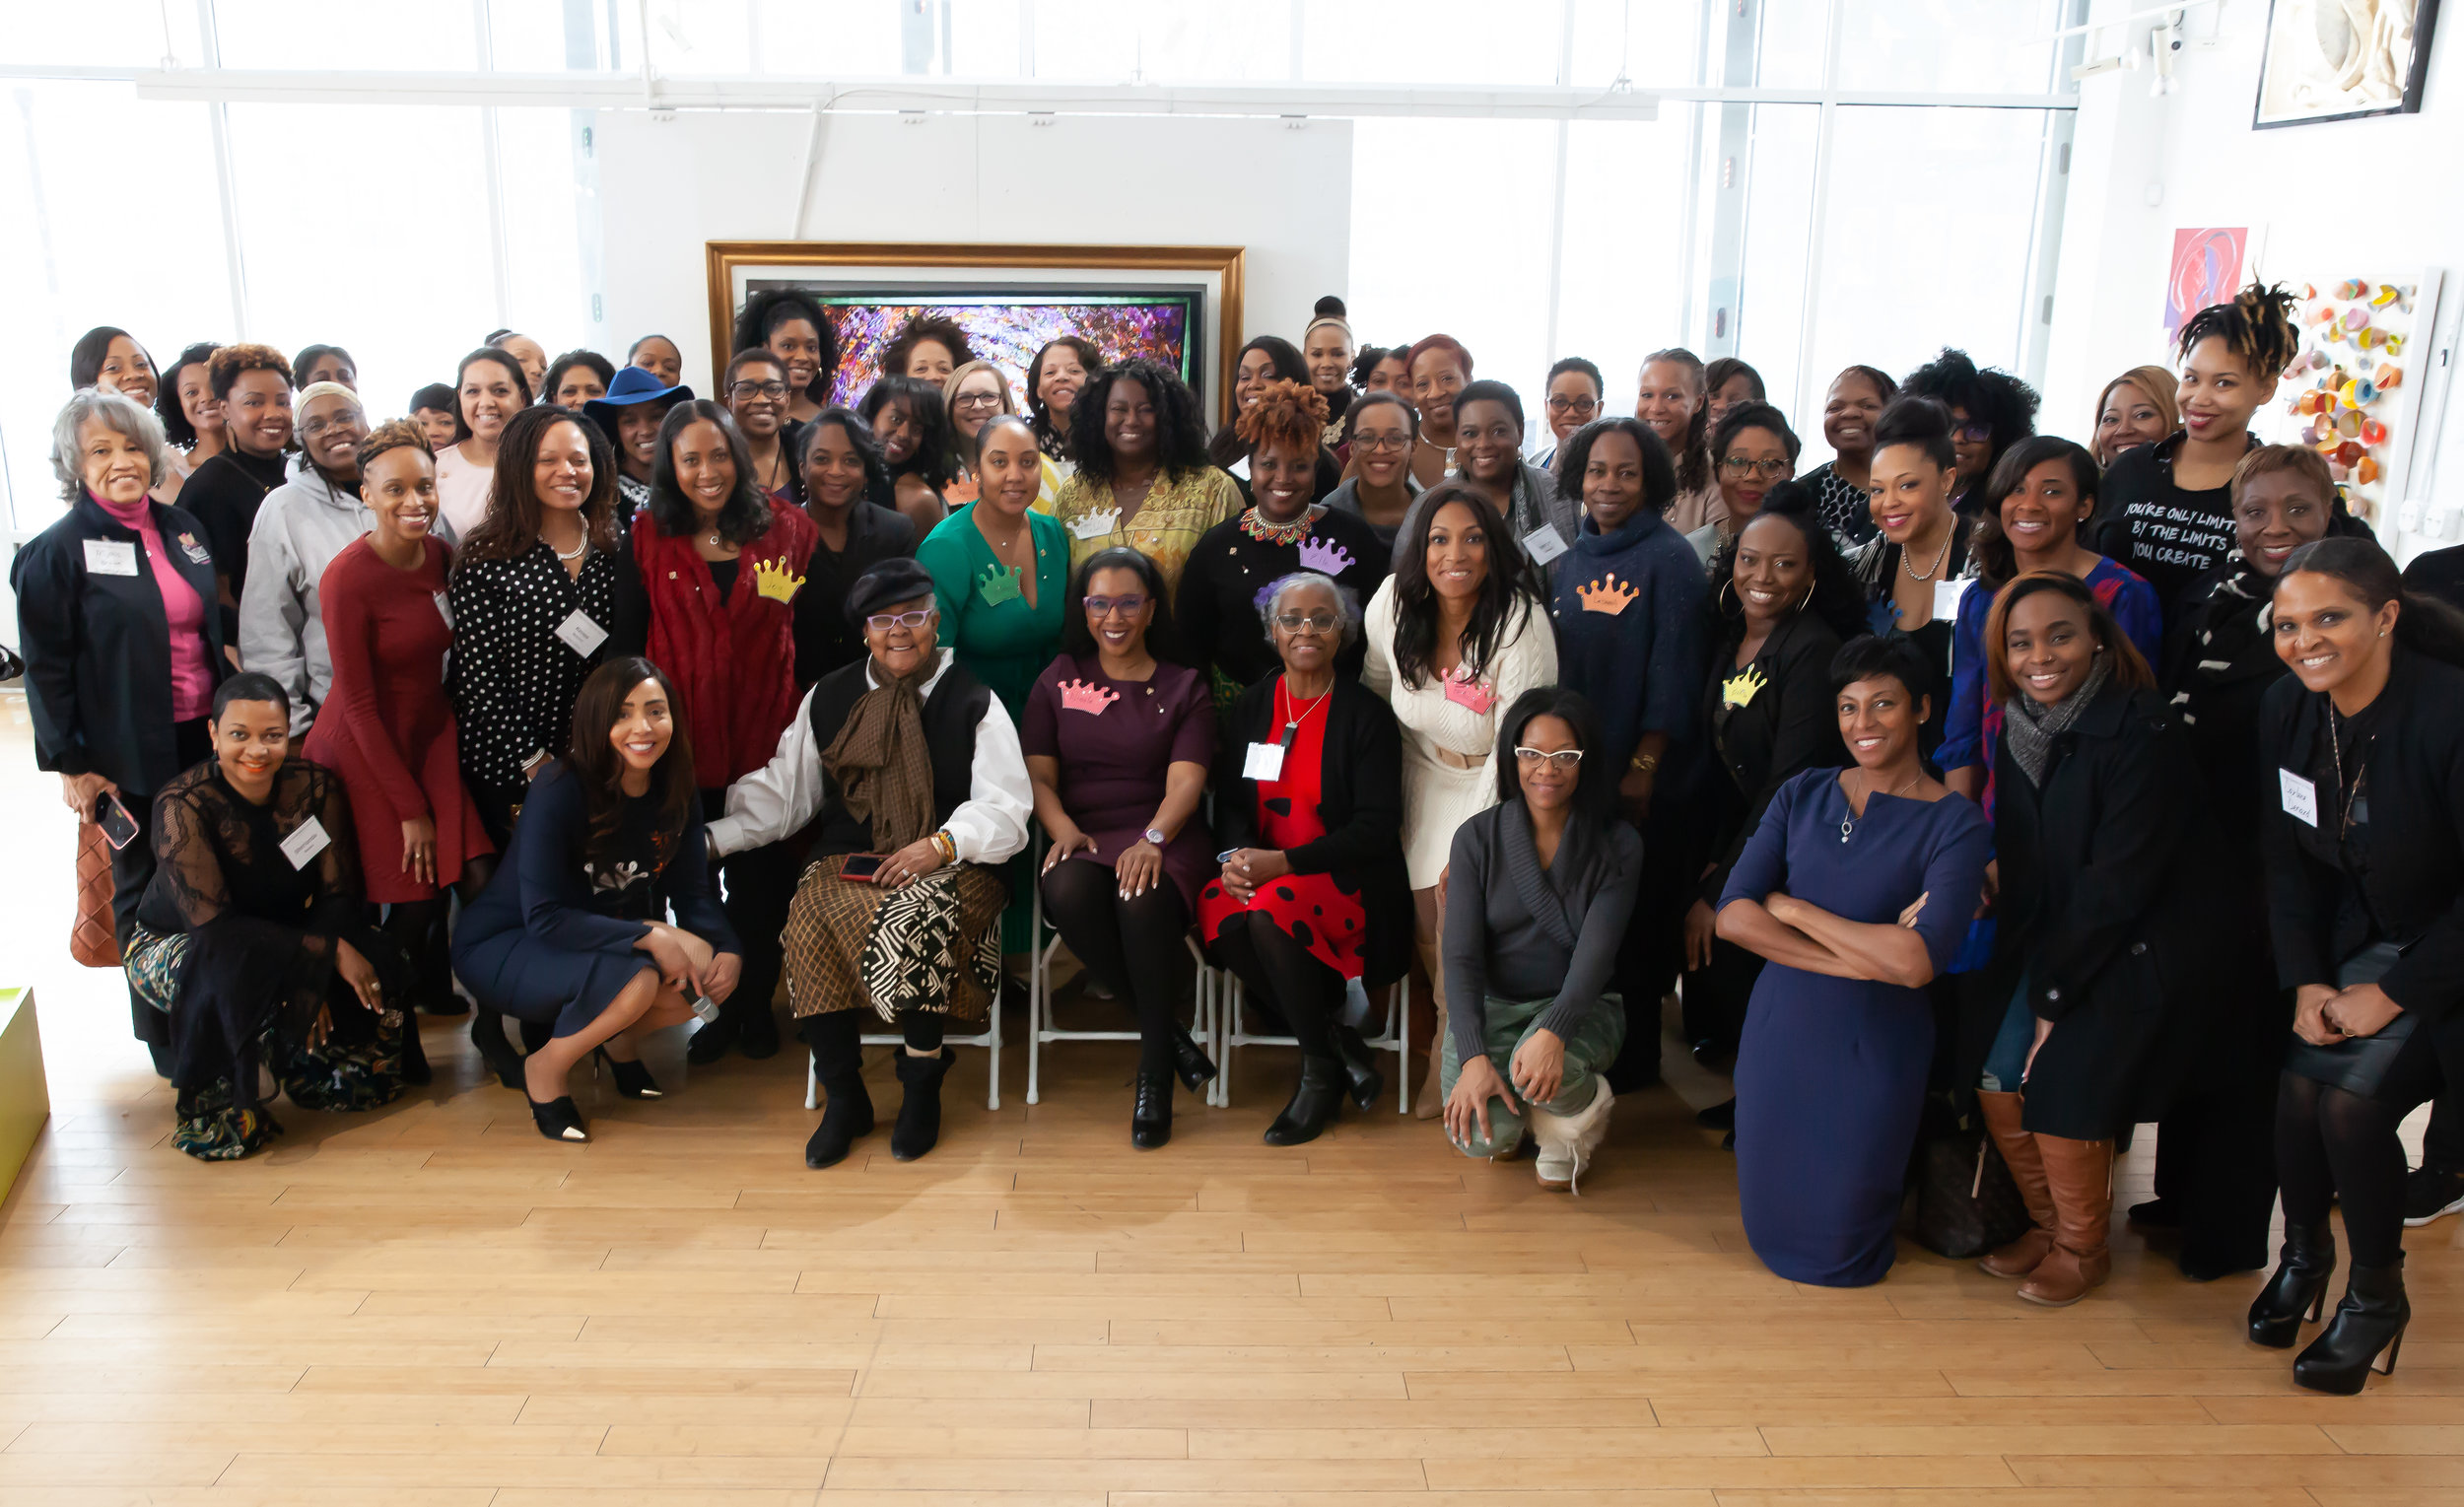 Queenmakers: 1st Annual Grantee Celebration Attendees and Grantees